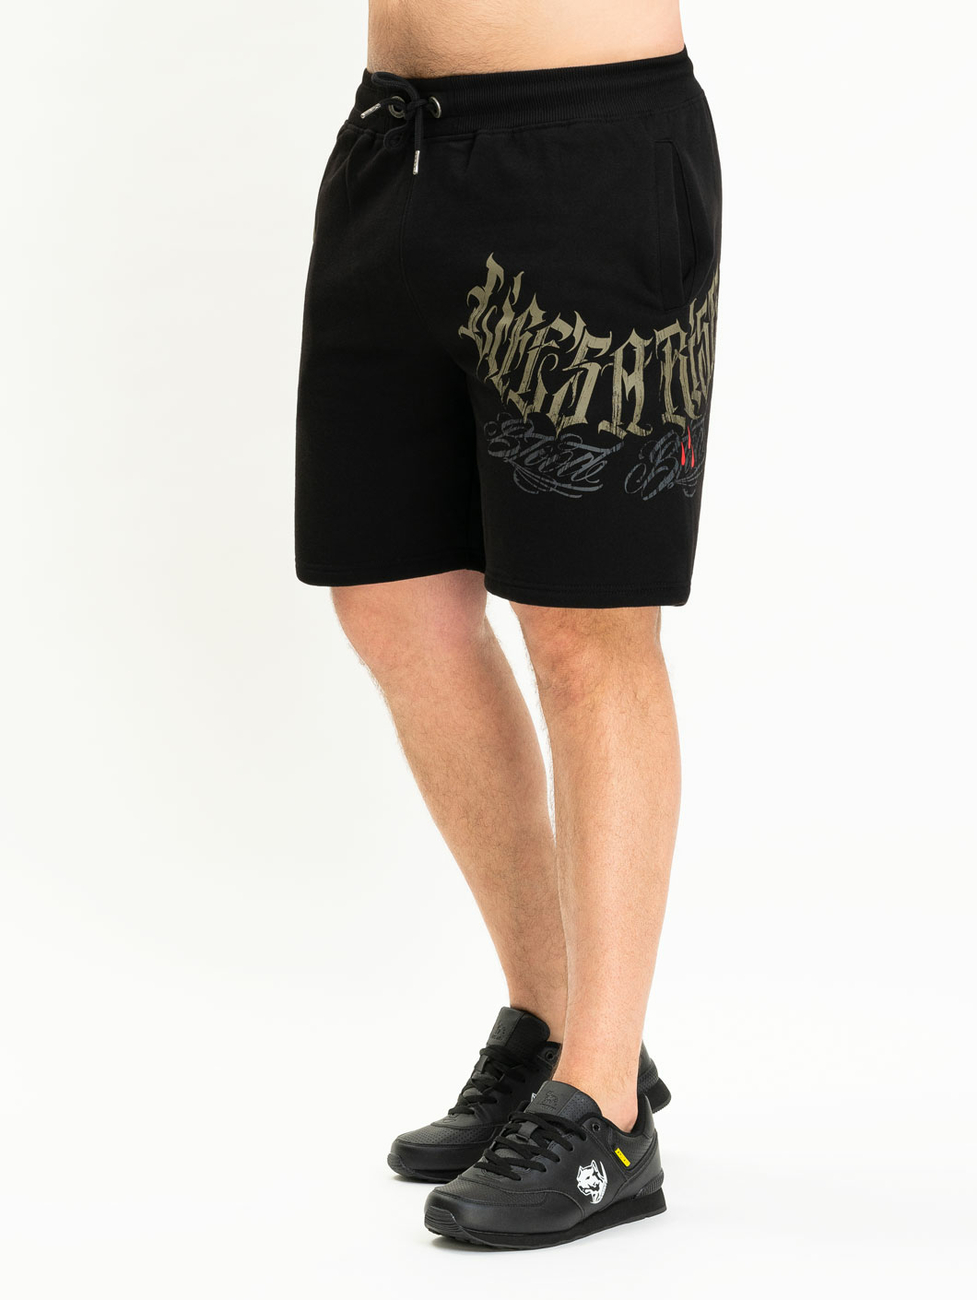 Blood In Blood Out Miembros Sweatshorts XL